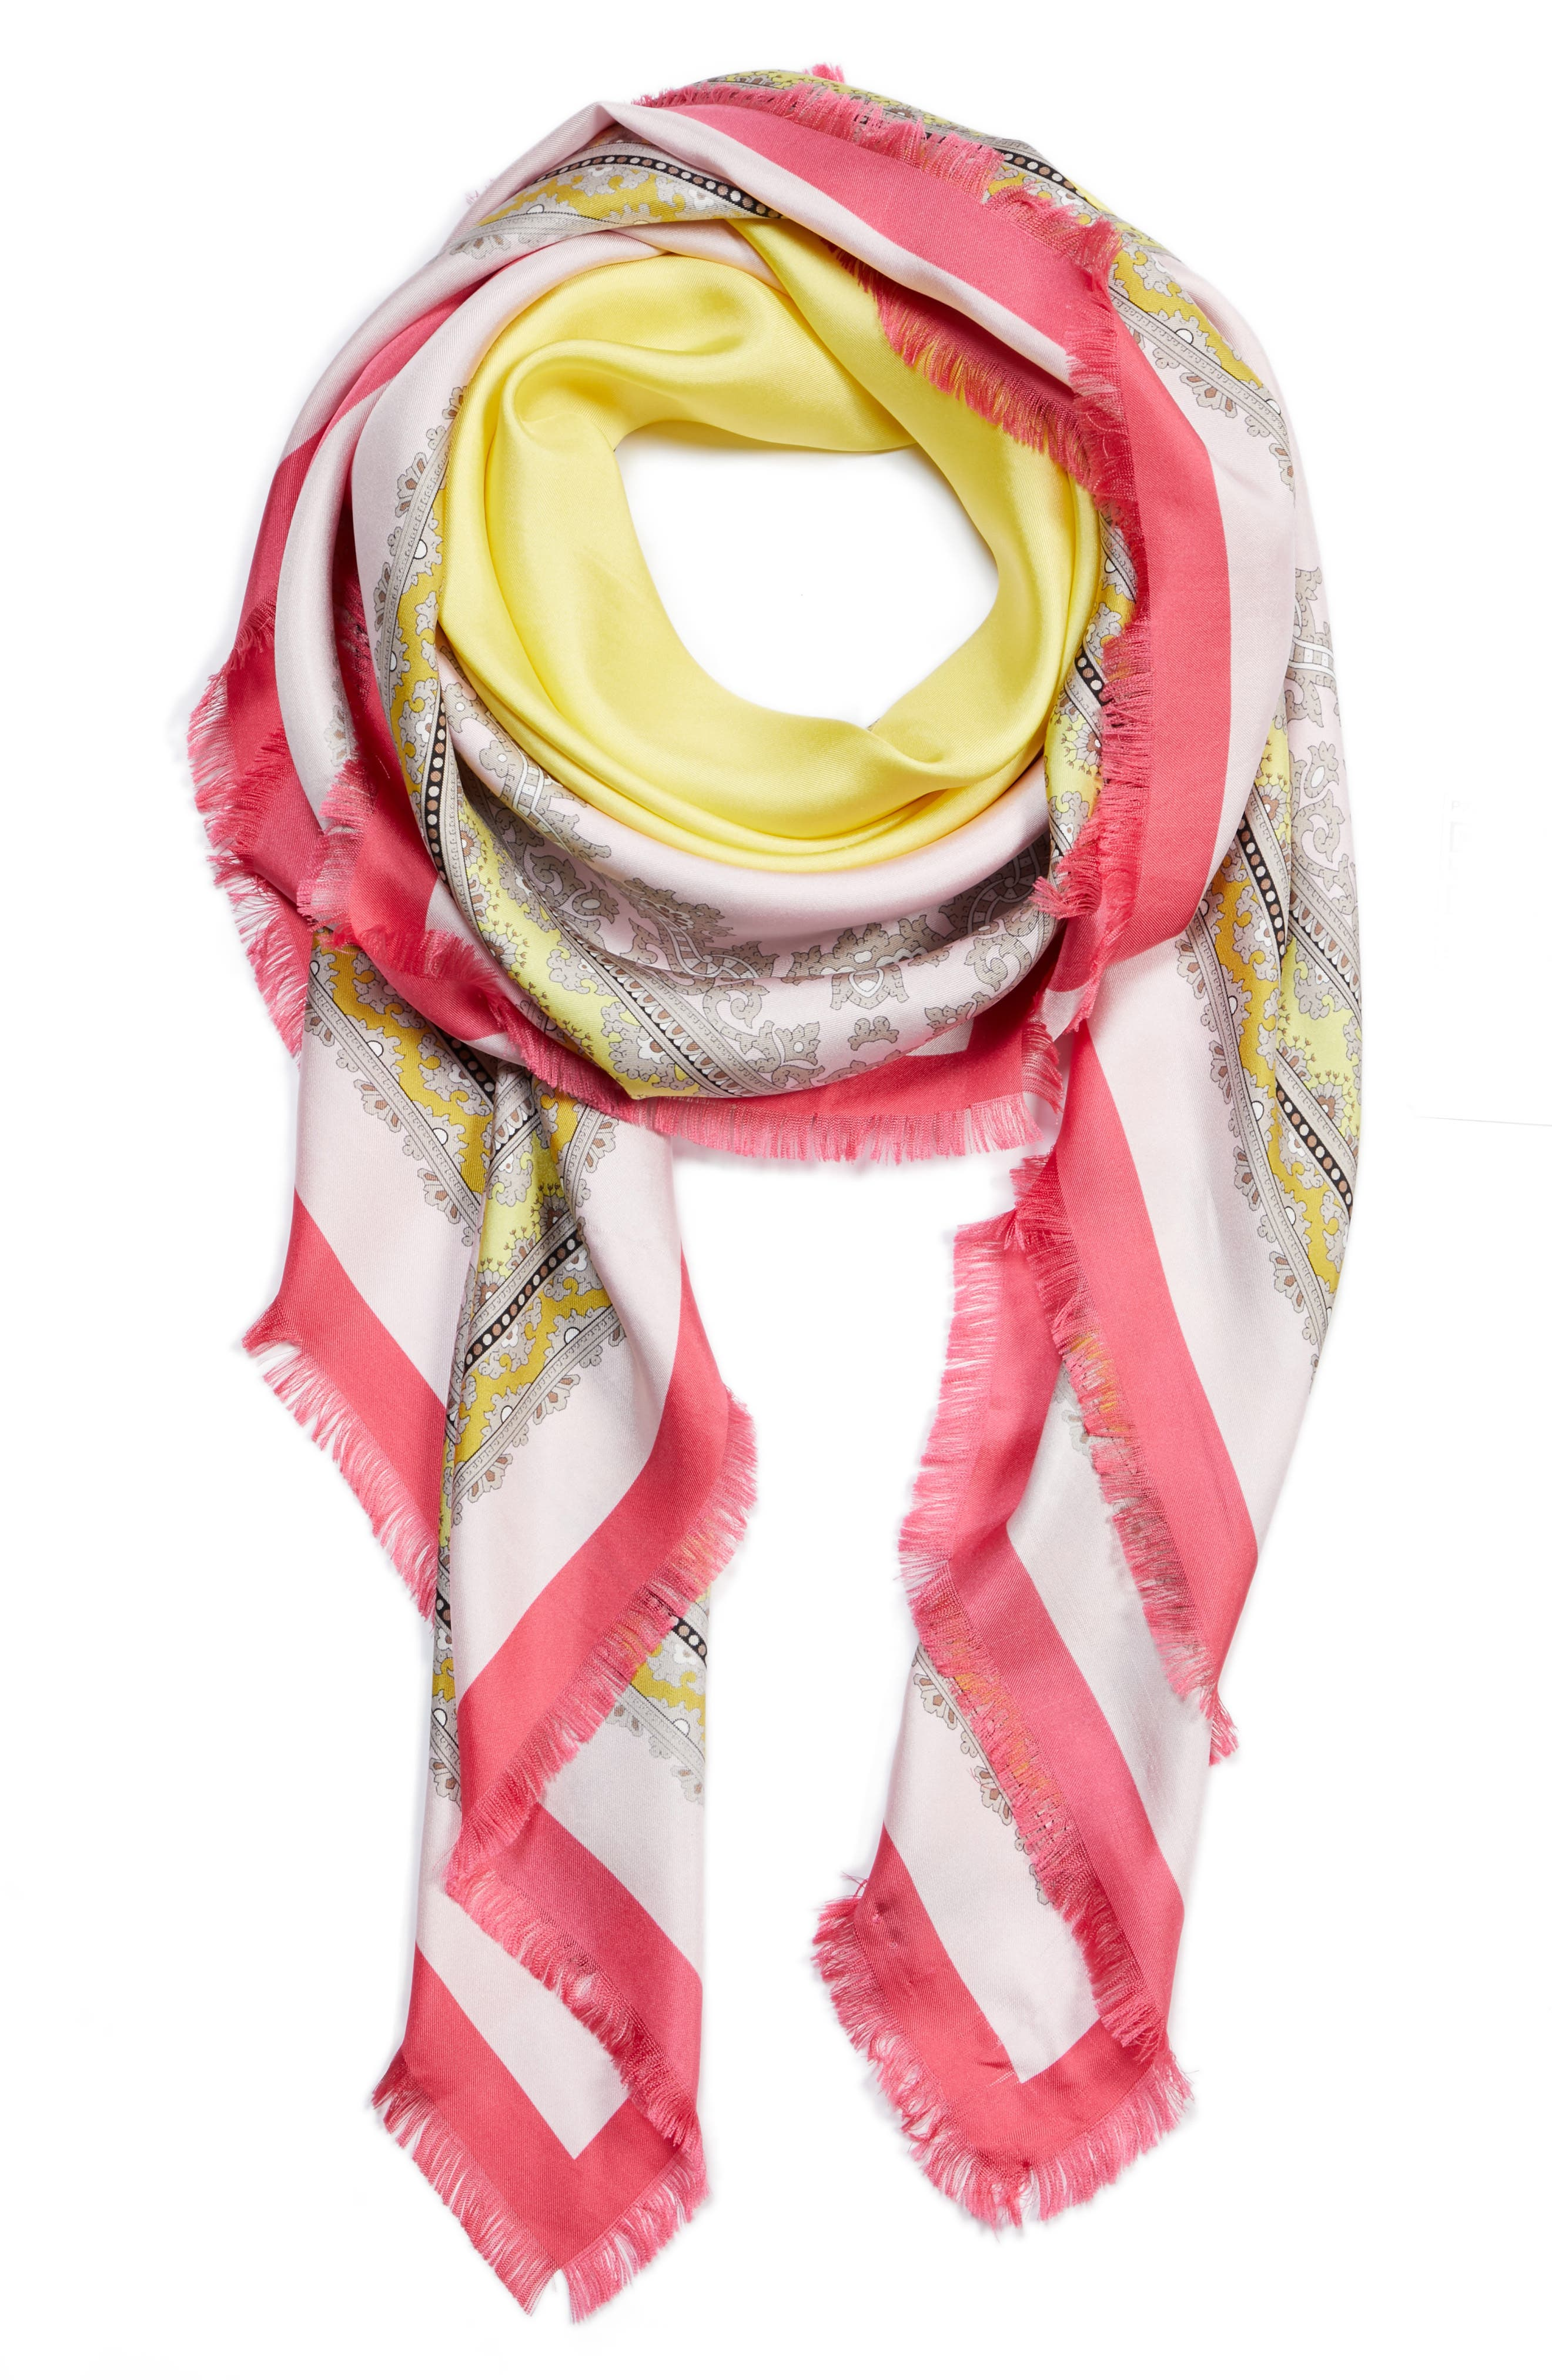 Ginepro Silk Scarf,                             Alternate thumbnail 3, color,                             664